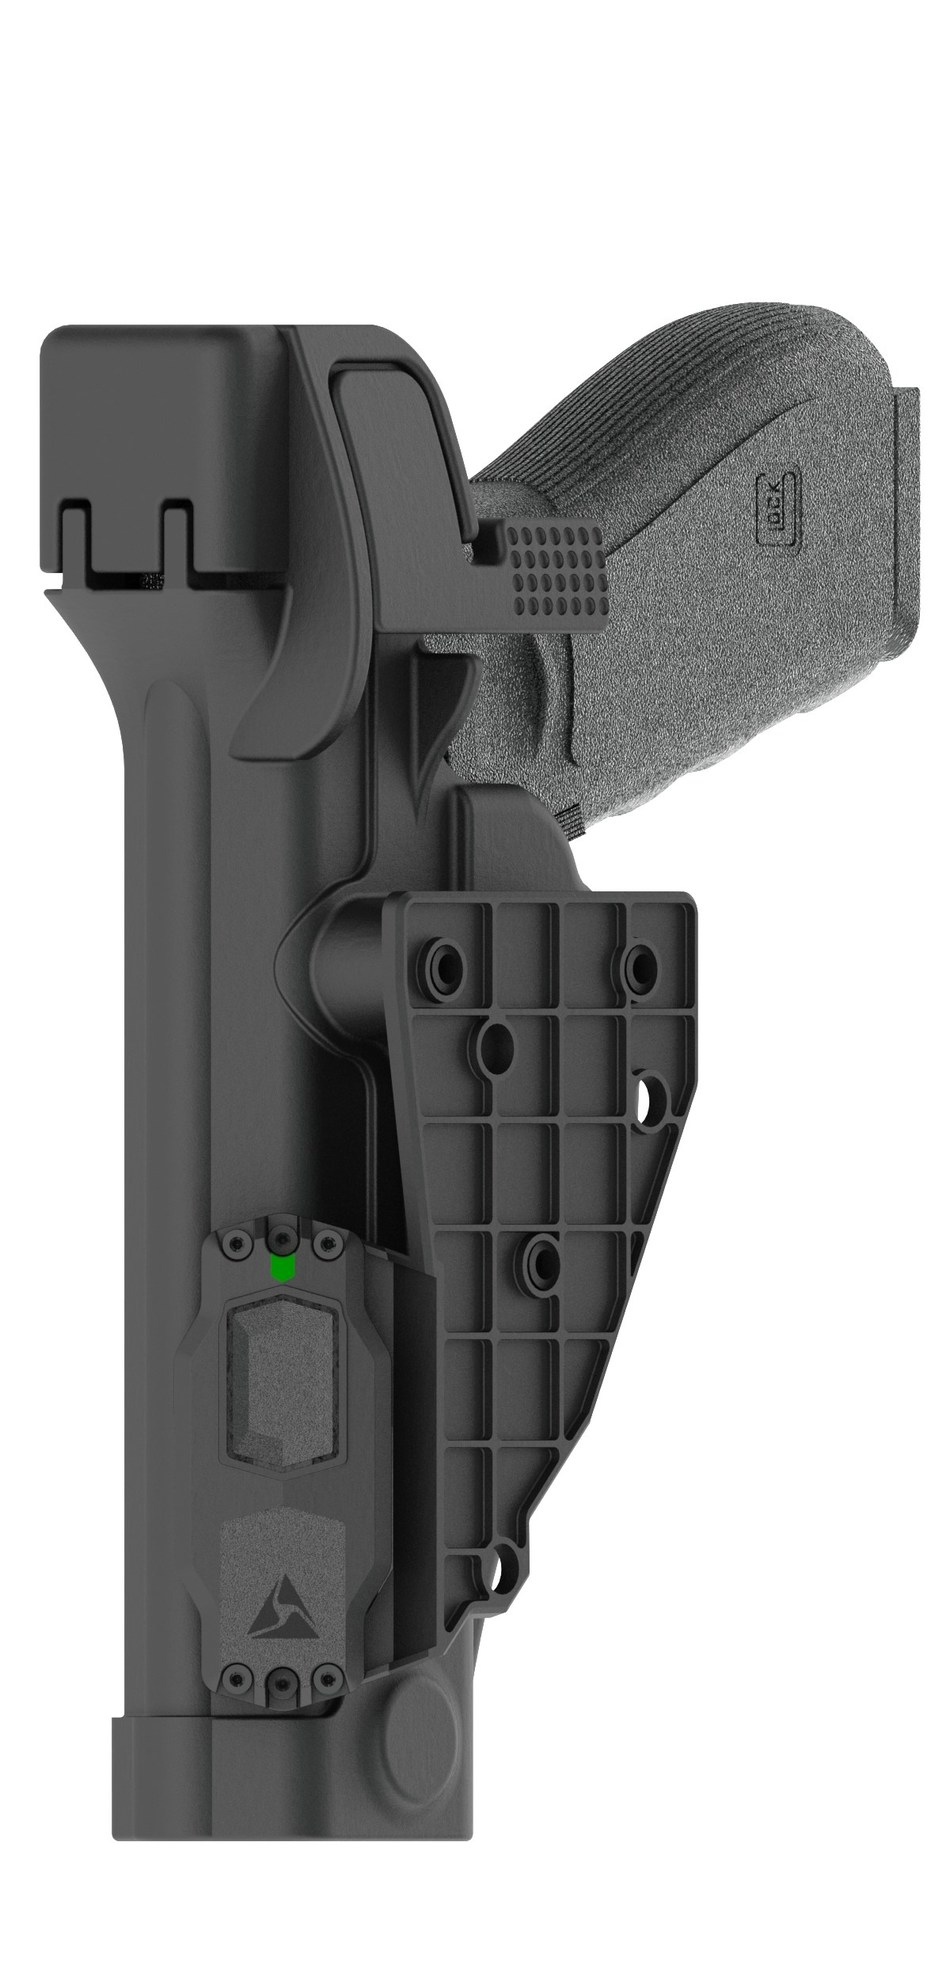 Axon Signal Sidearm by TASER International, Inc., Scottsdale, AZ, USA